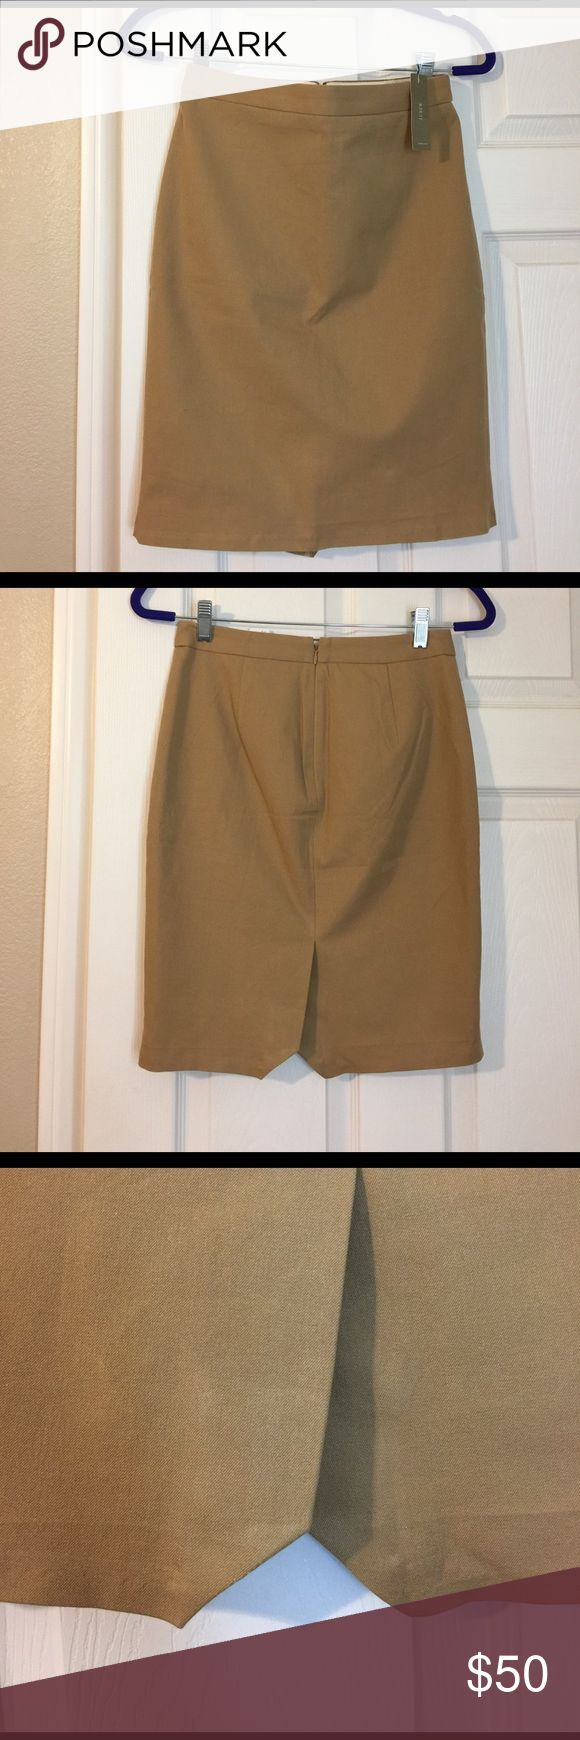 "J.Crew tan pencil skirt in stretch cotton Adorable tan pencil skirt from J.Crew. Very cute and a great versatile color. Had a professional tailor take the hem down 1""1/2 but it's still a little too short for my personal liking, it hits right above my knee and I'm 5'1"". No trades, thanks for looking! J. Crew Skirts Pencil"